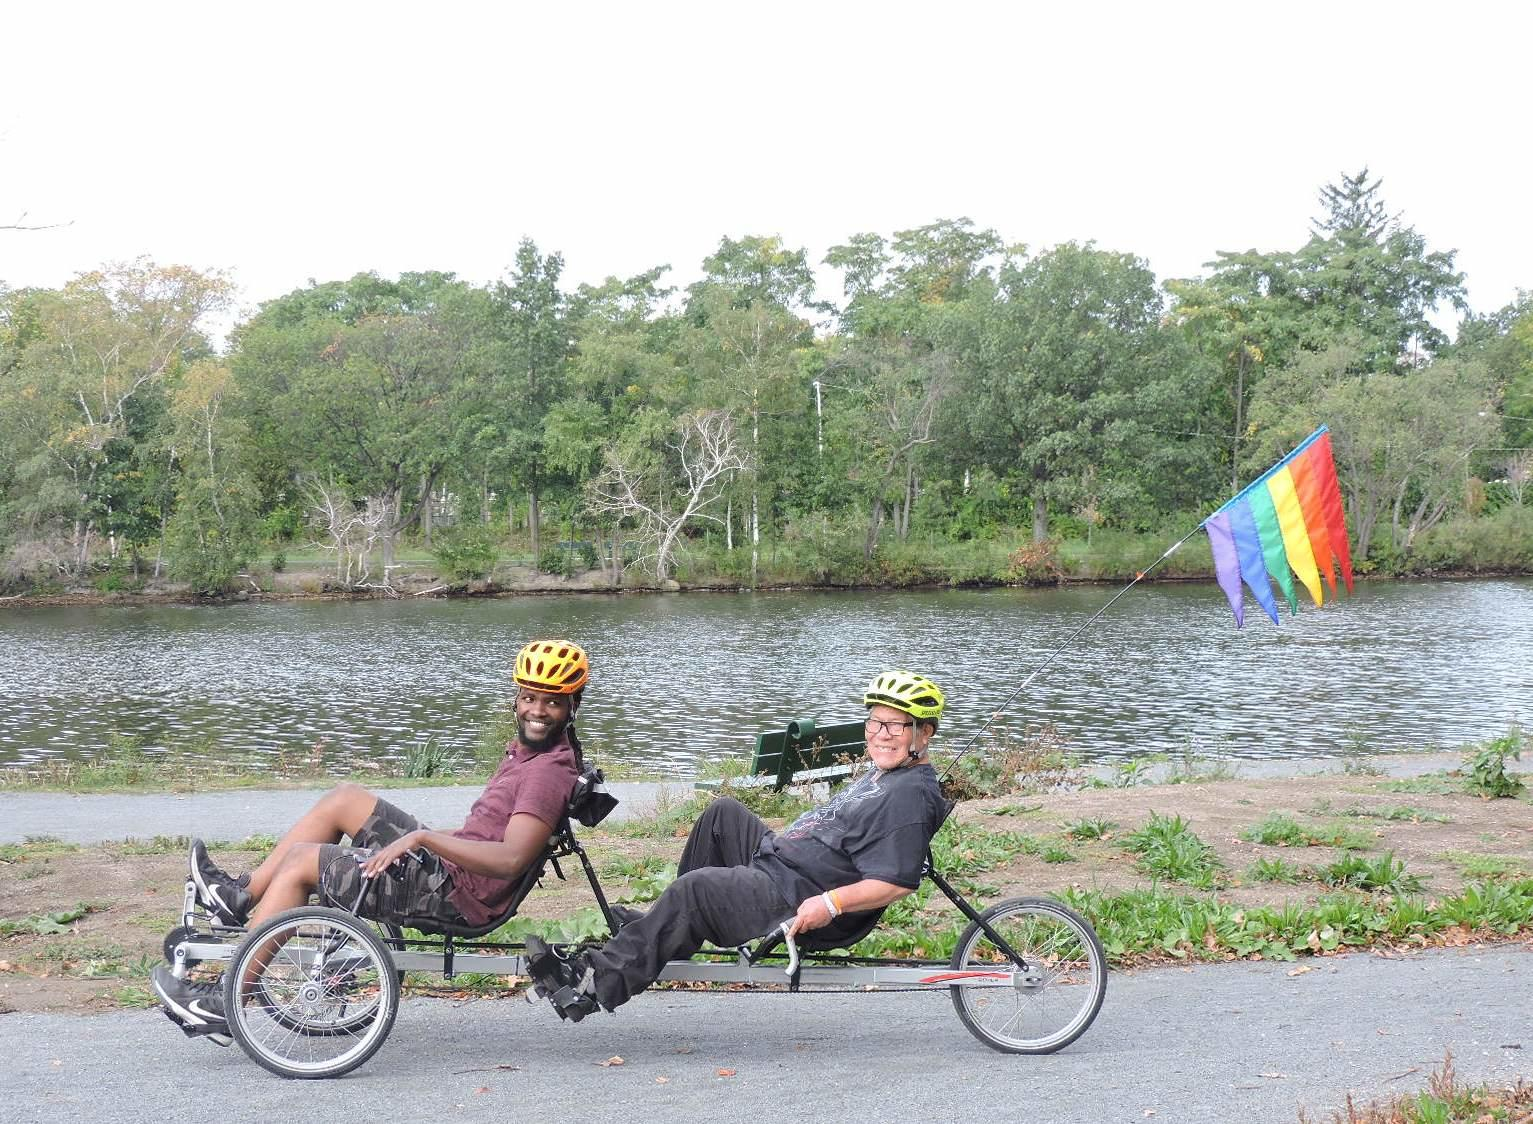 A photo of a younger man and an older man riding a recumbent tricycle together. They are both pedaling, and the younger man in front is also steering. They are smiling at the camera. Behind them is the Charles River.